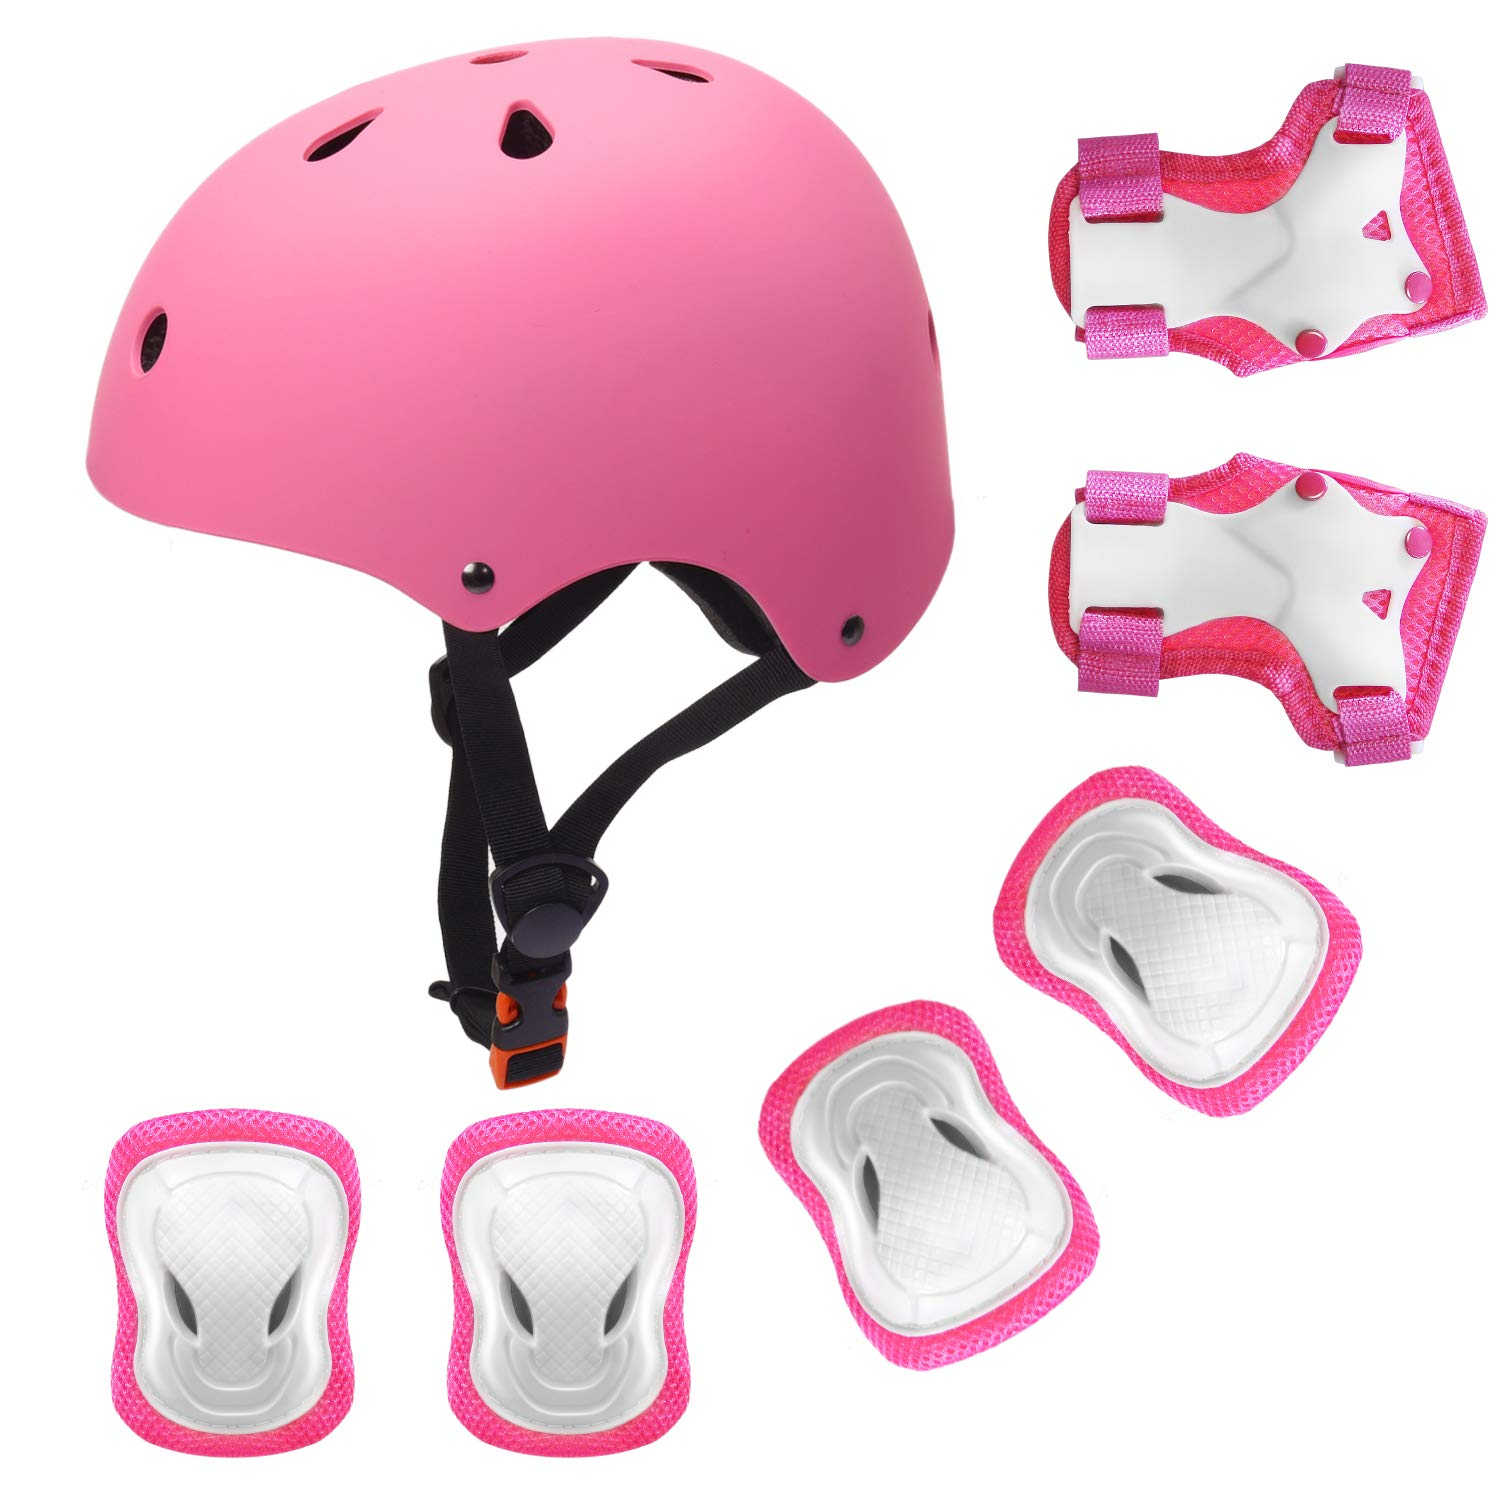 YUFU Kids Helmet Sports Protective Gear Set for 3-8 Years Toddler Boys Girls Bike Skateboard Adjustable Helmet Knee Elbow Wrist Pads for Cycling Skating Roller Scooter Bicycle, Pack of 7 Pink S